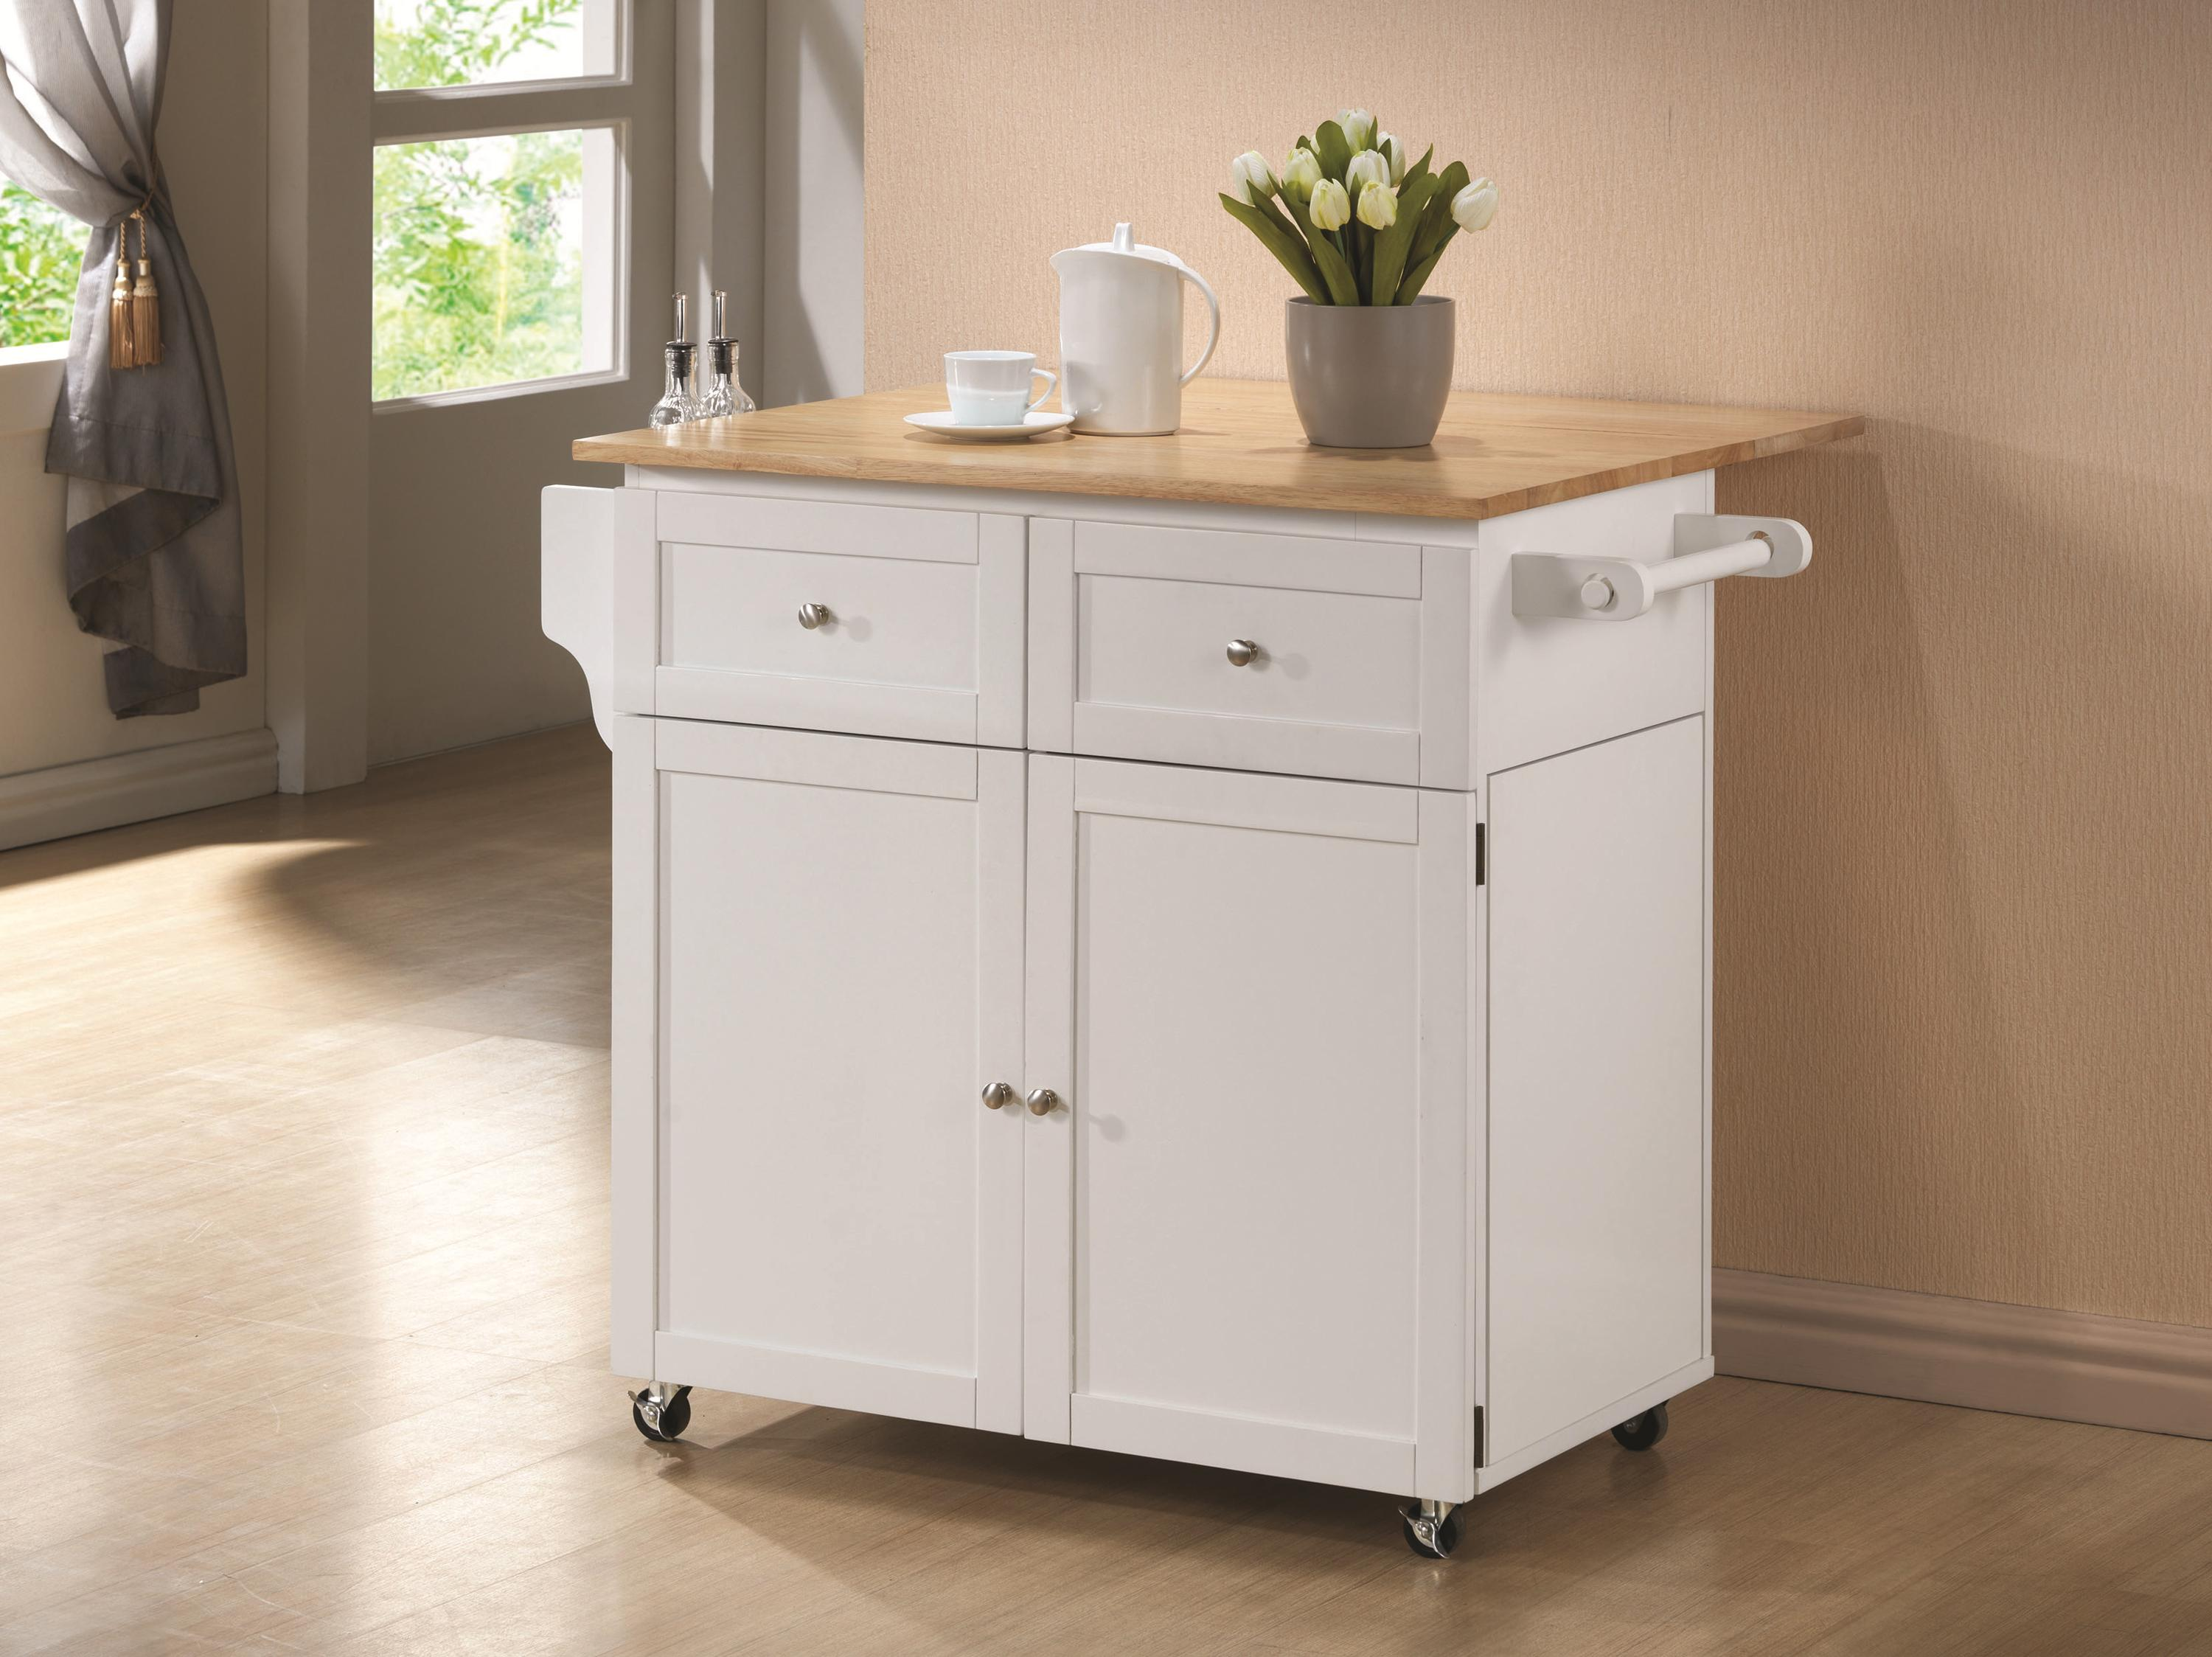 superior Kitchen Garbage Can Cabinet #3: View in gallery White kitchen cart for extra storage